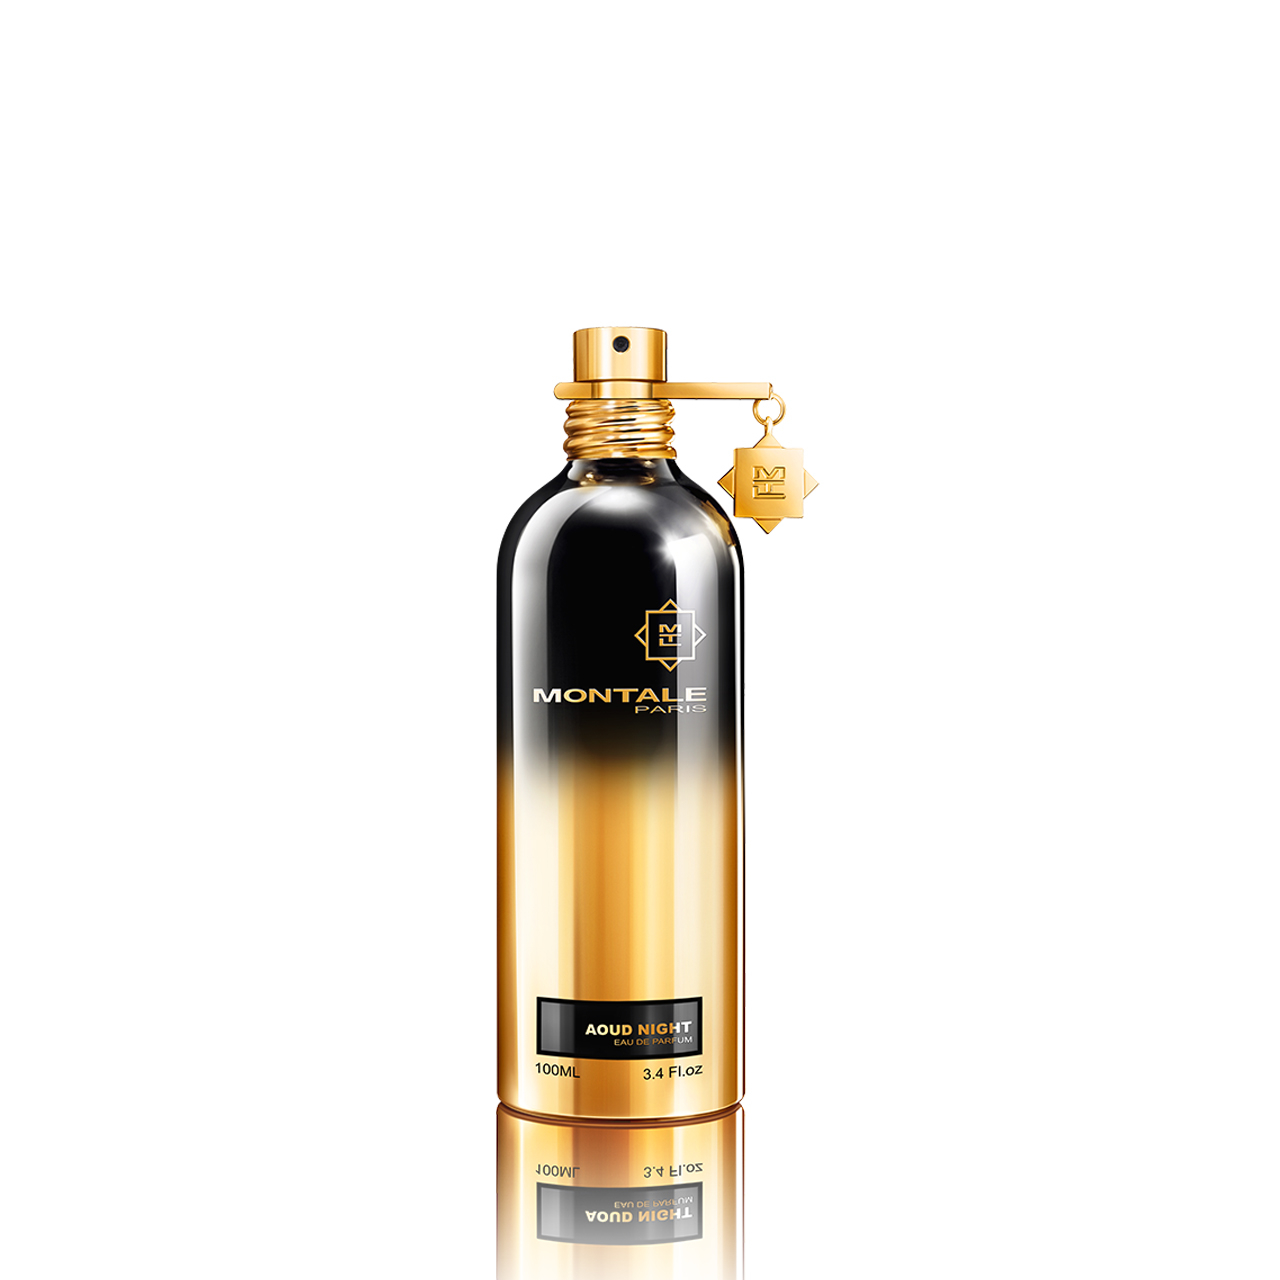 Aoud Night - Eau de Parfum